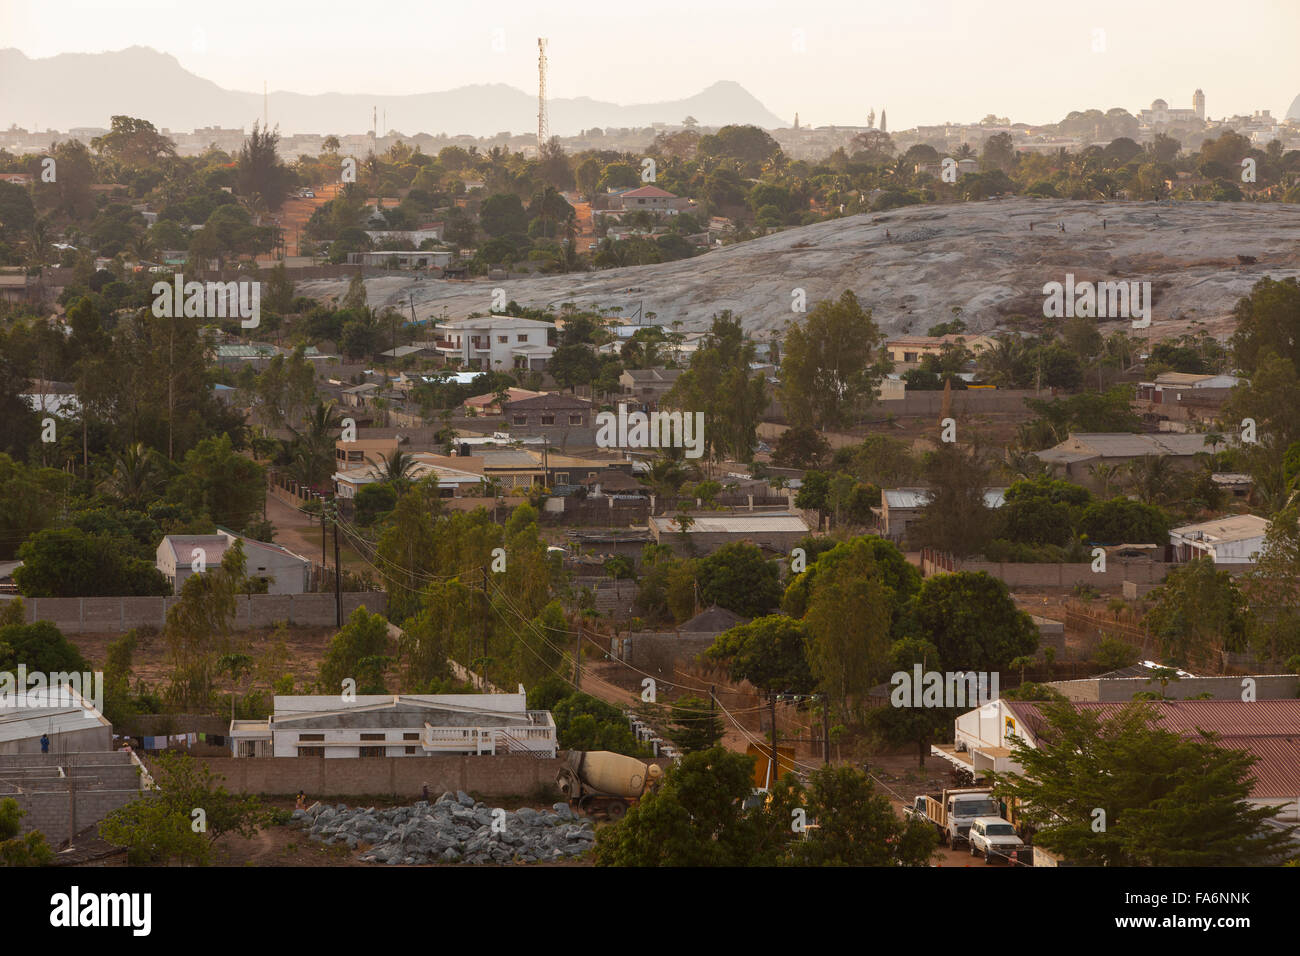 The city of Nampula is the largest city in northern Mozambique. - Stock Image